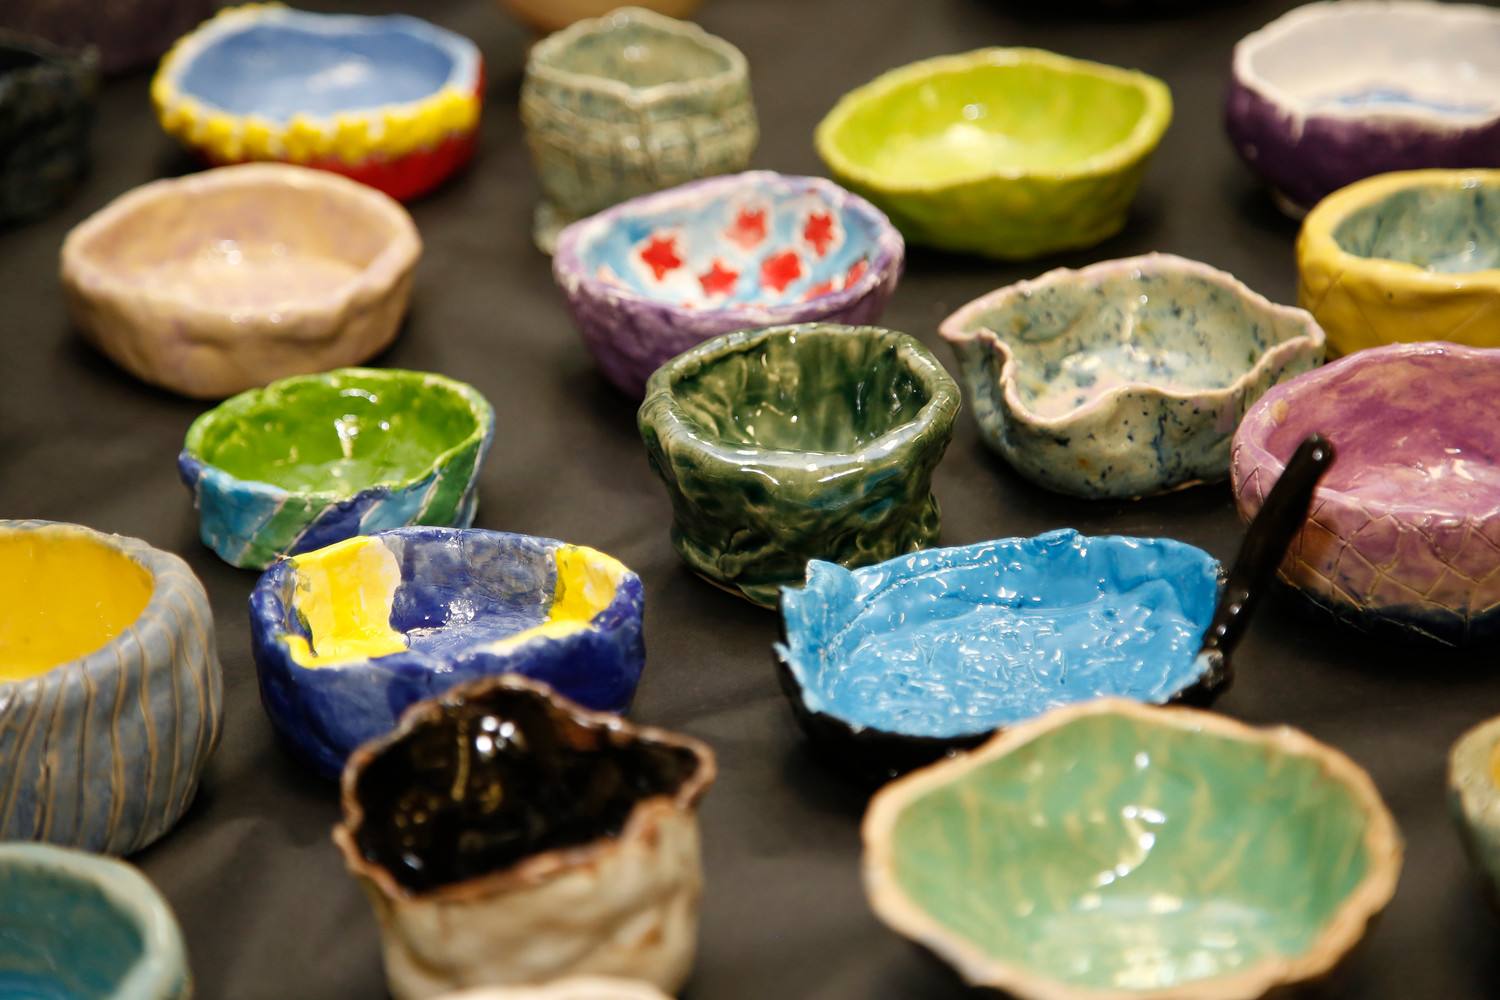 Students, staff and community members made ceramic bowls that were sold at the dinner.